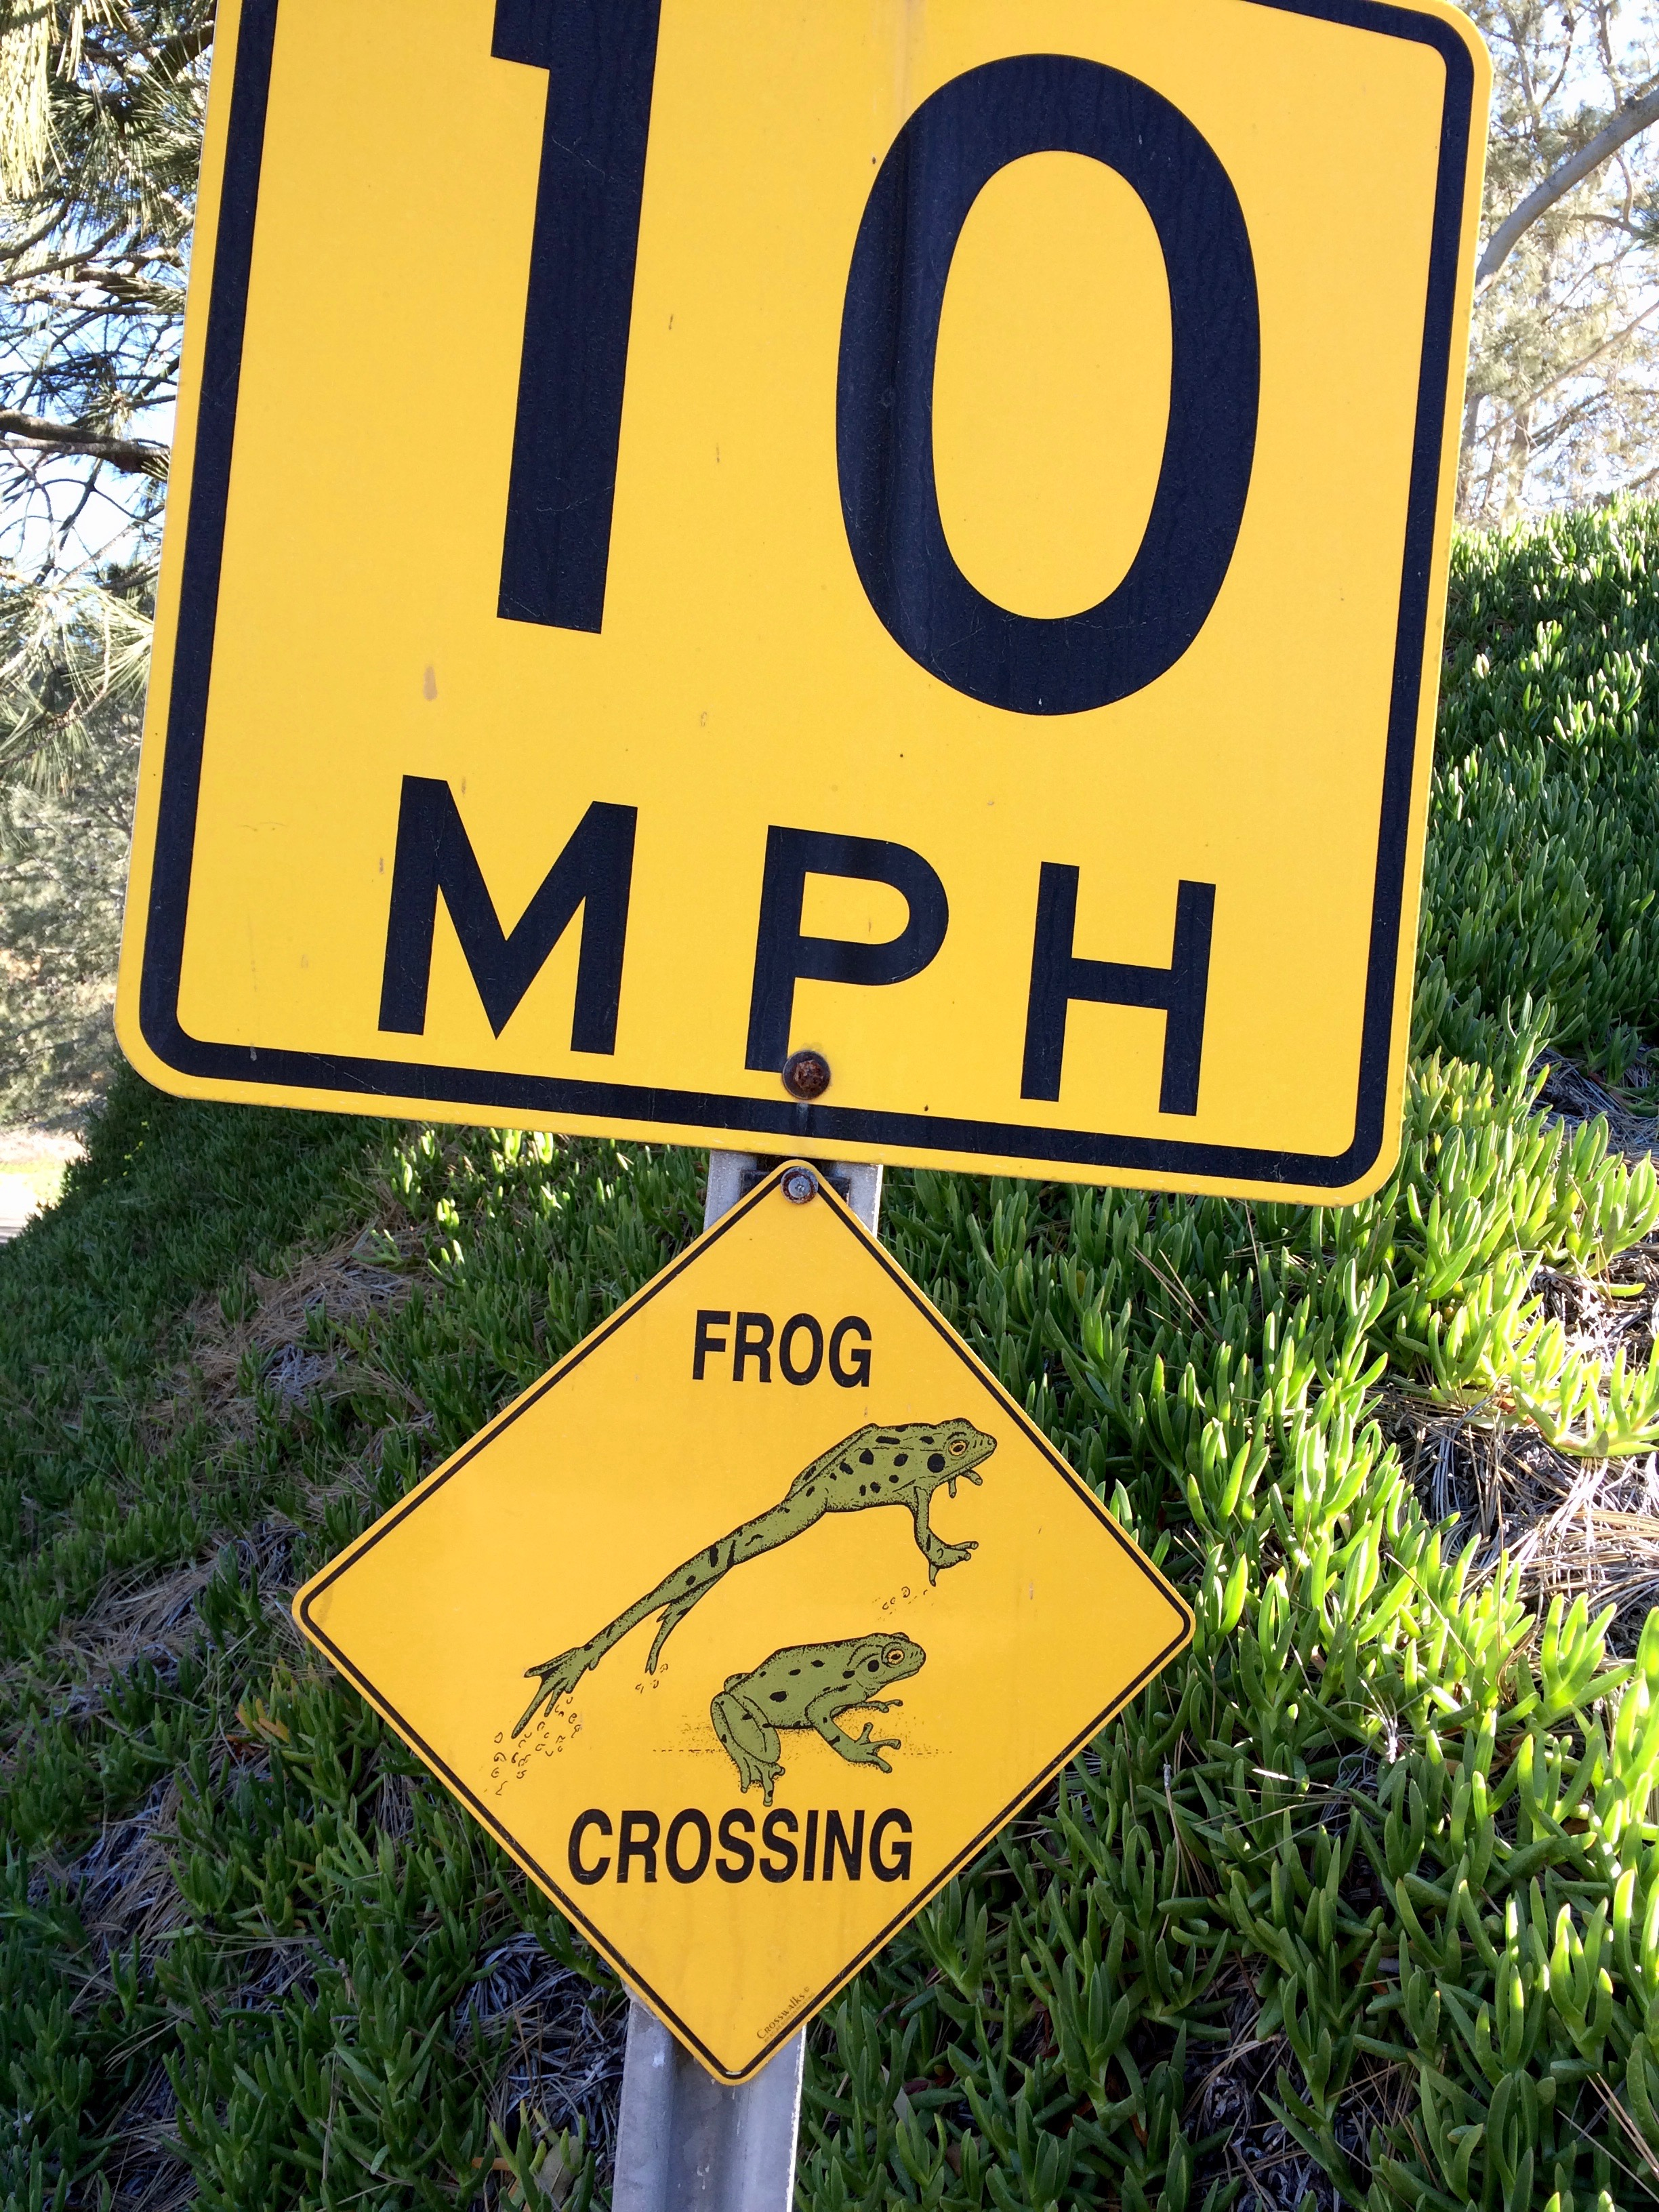 Frogs are clocked at 15 mph in Del Mar, so this keeps them safe